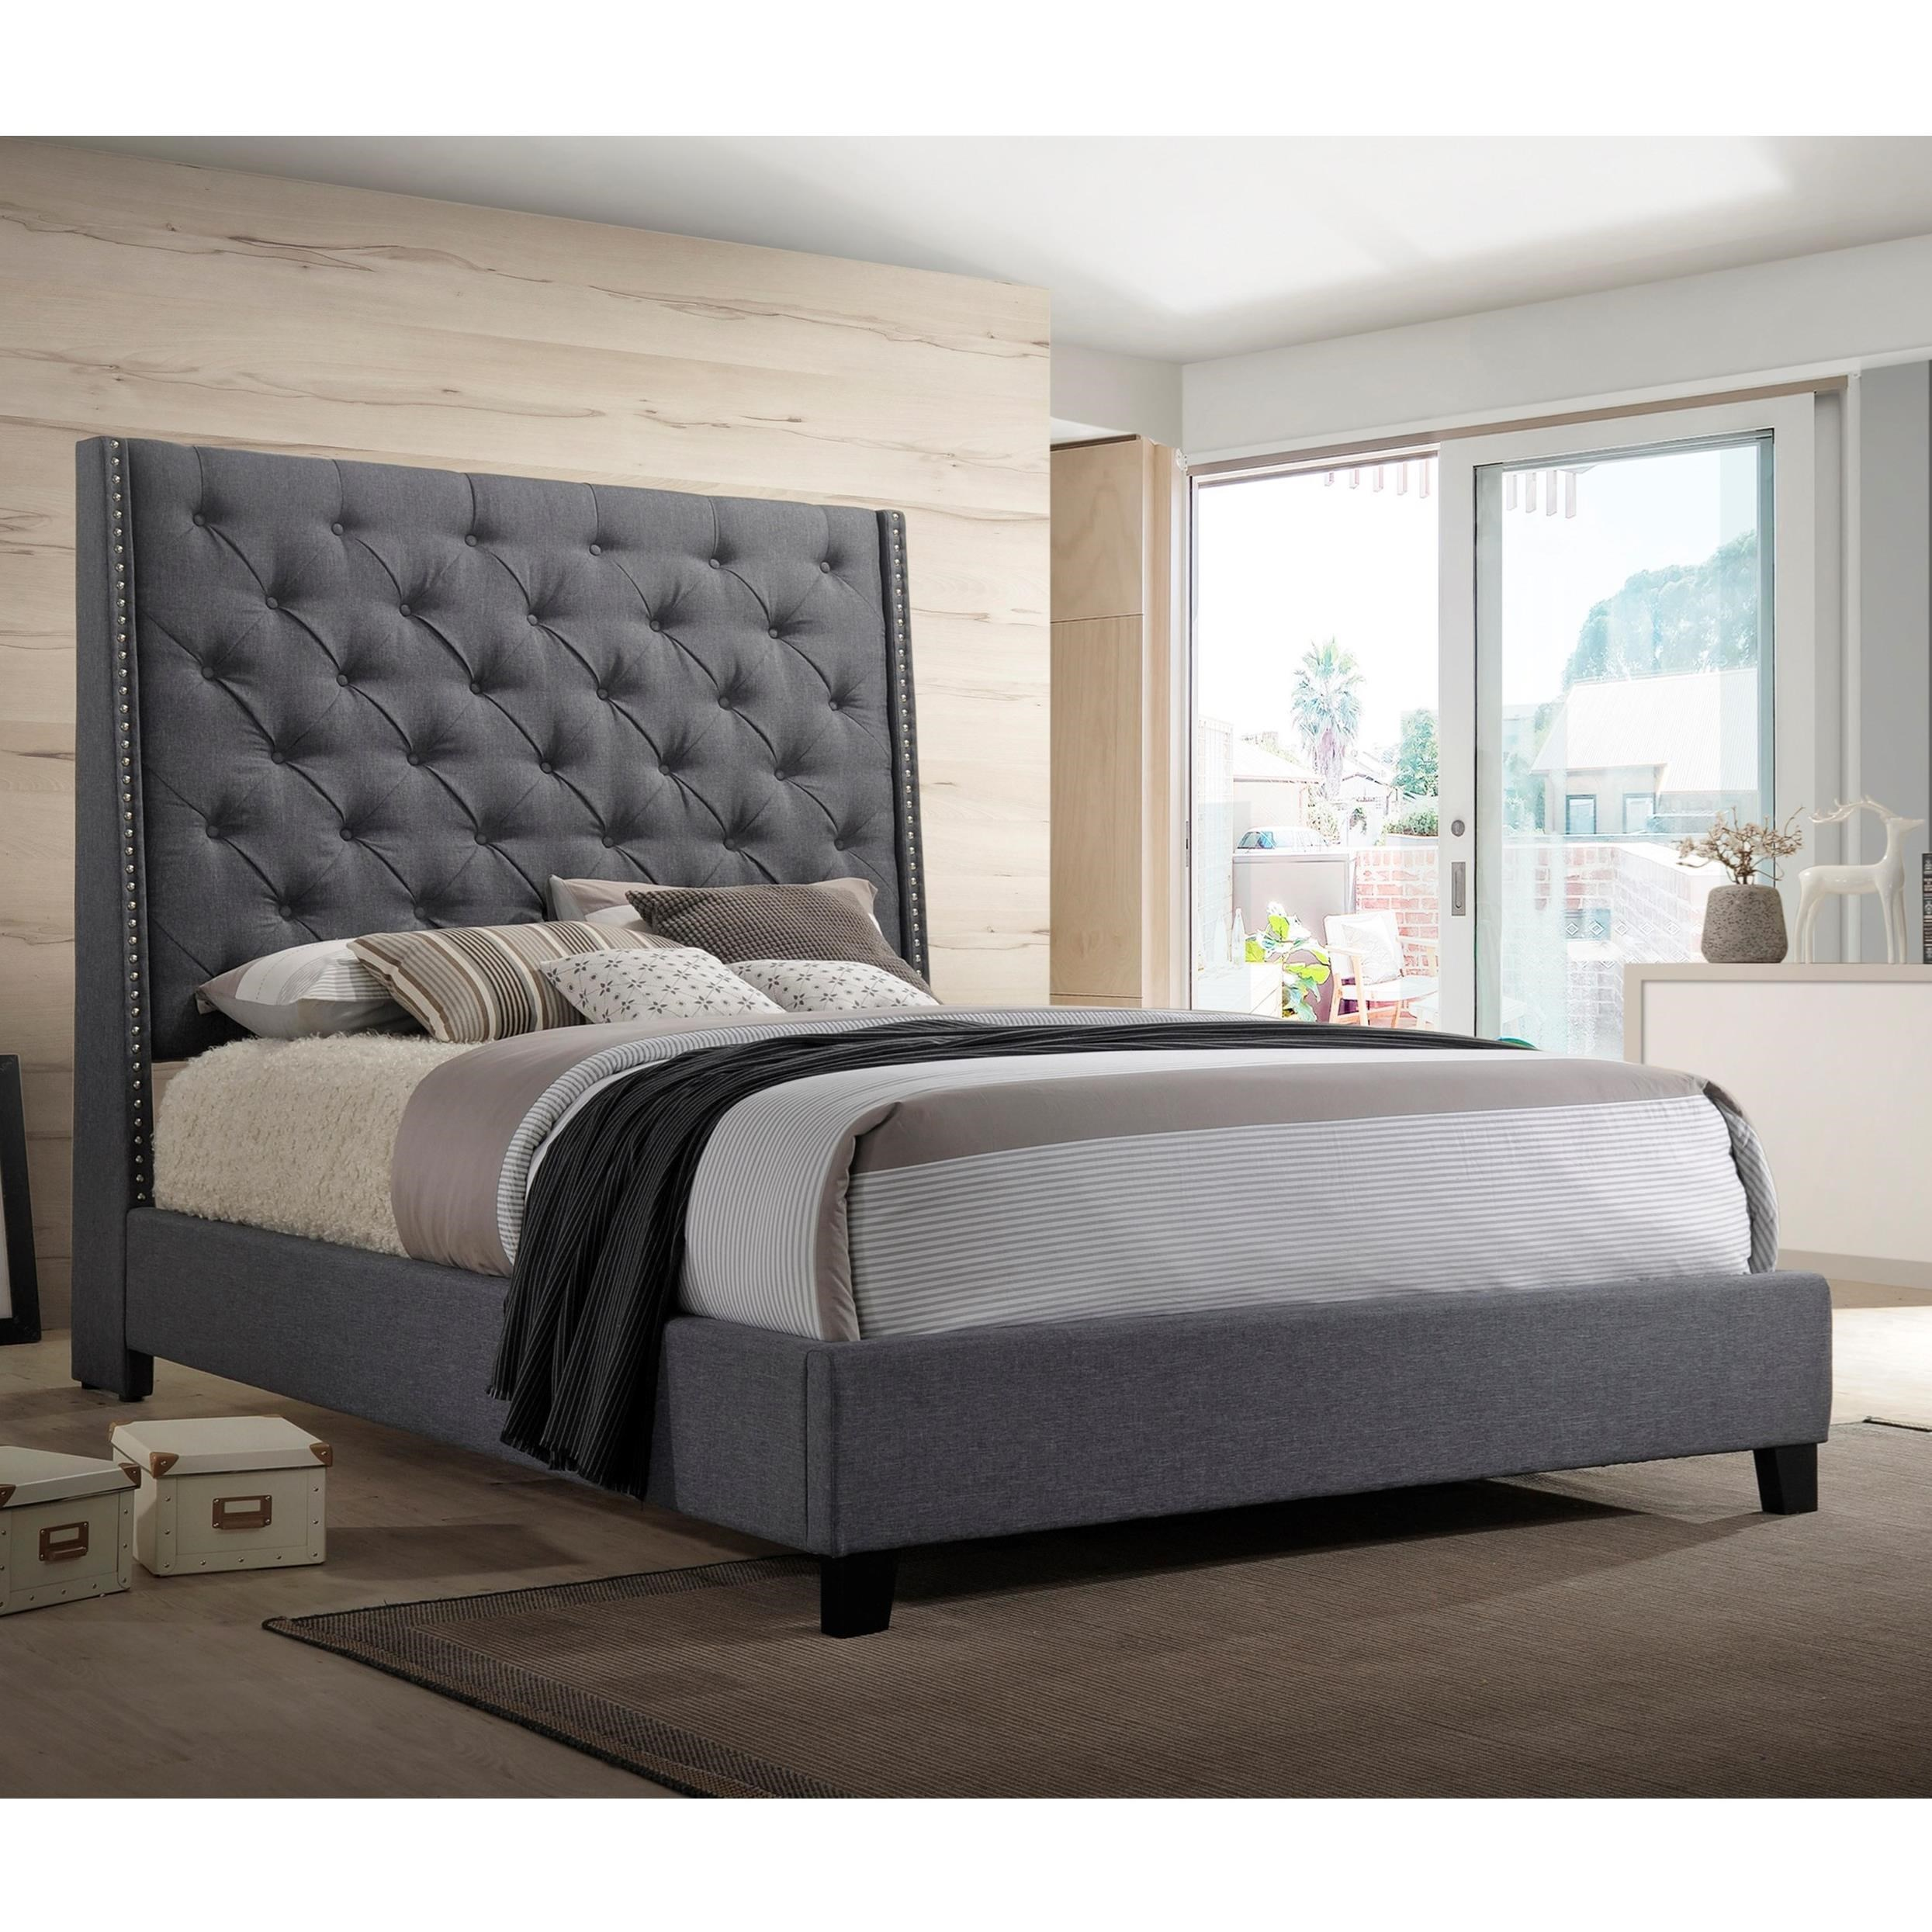 Crown Mark Chantilly Bed King Upholstered Bed With Button Tufted Headboard Royal Furniture Upholstered Beds